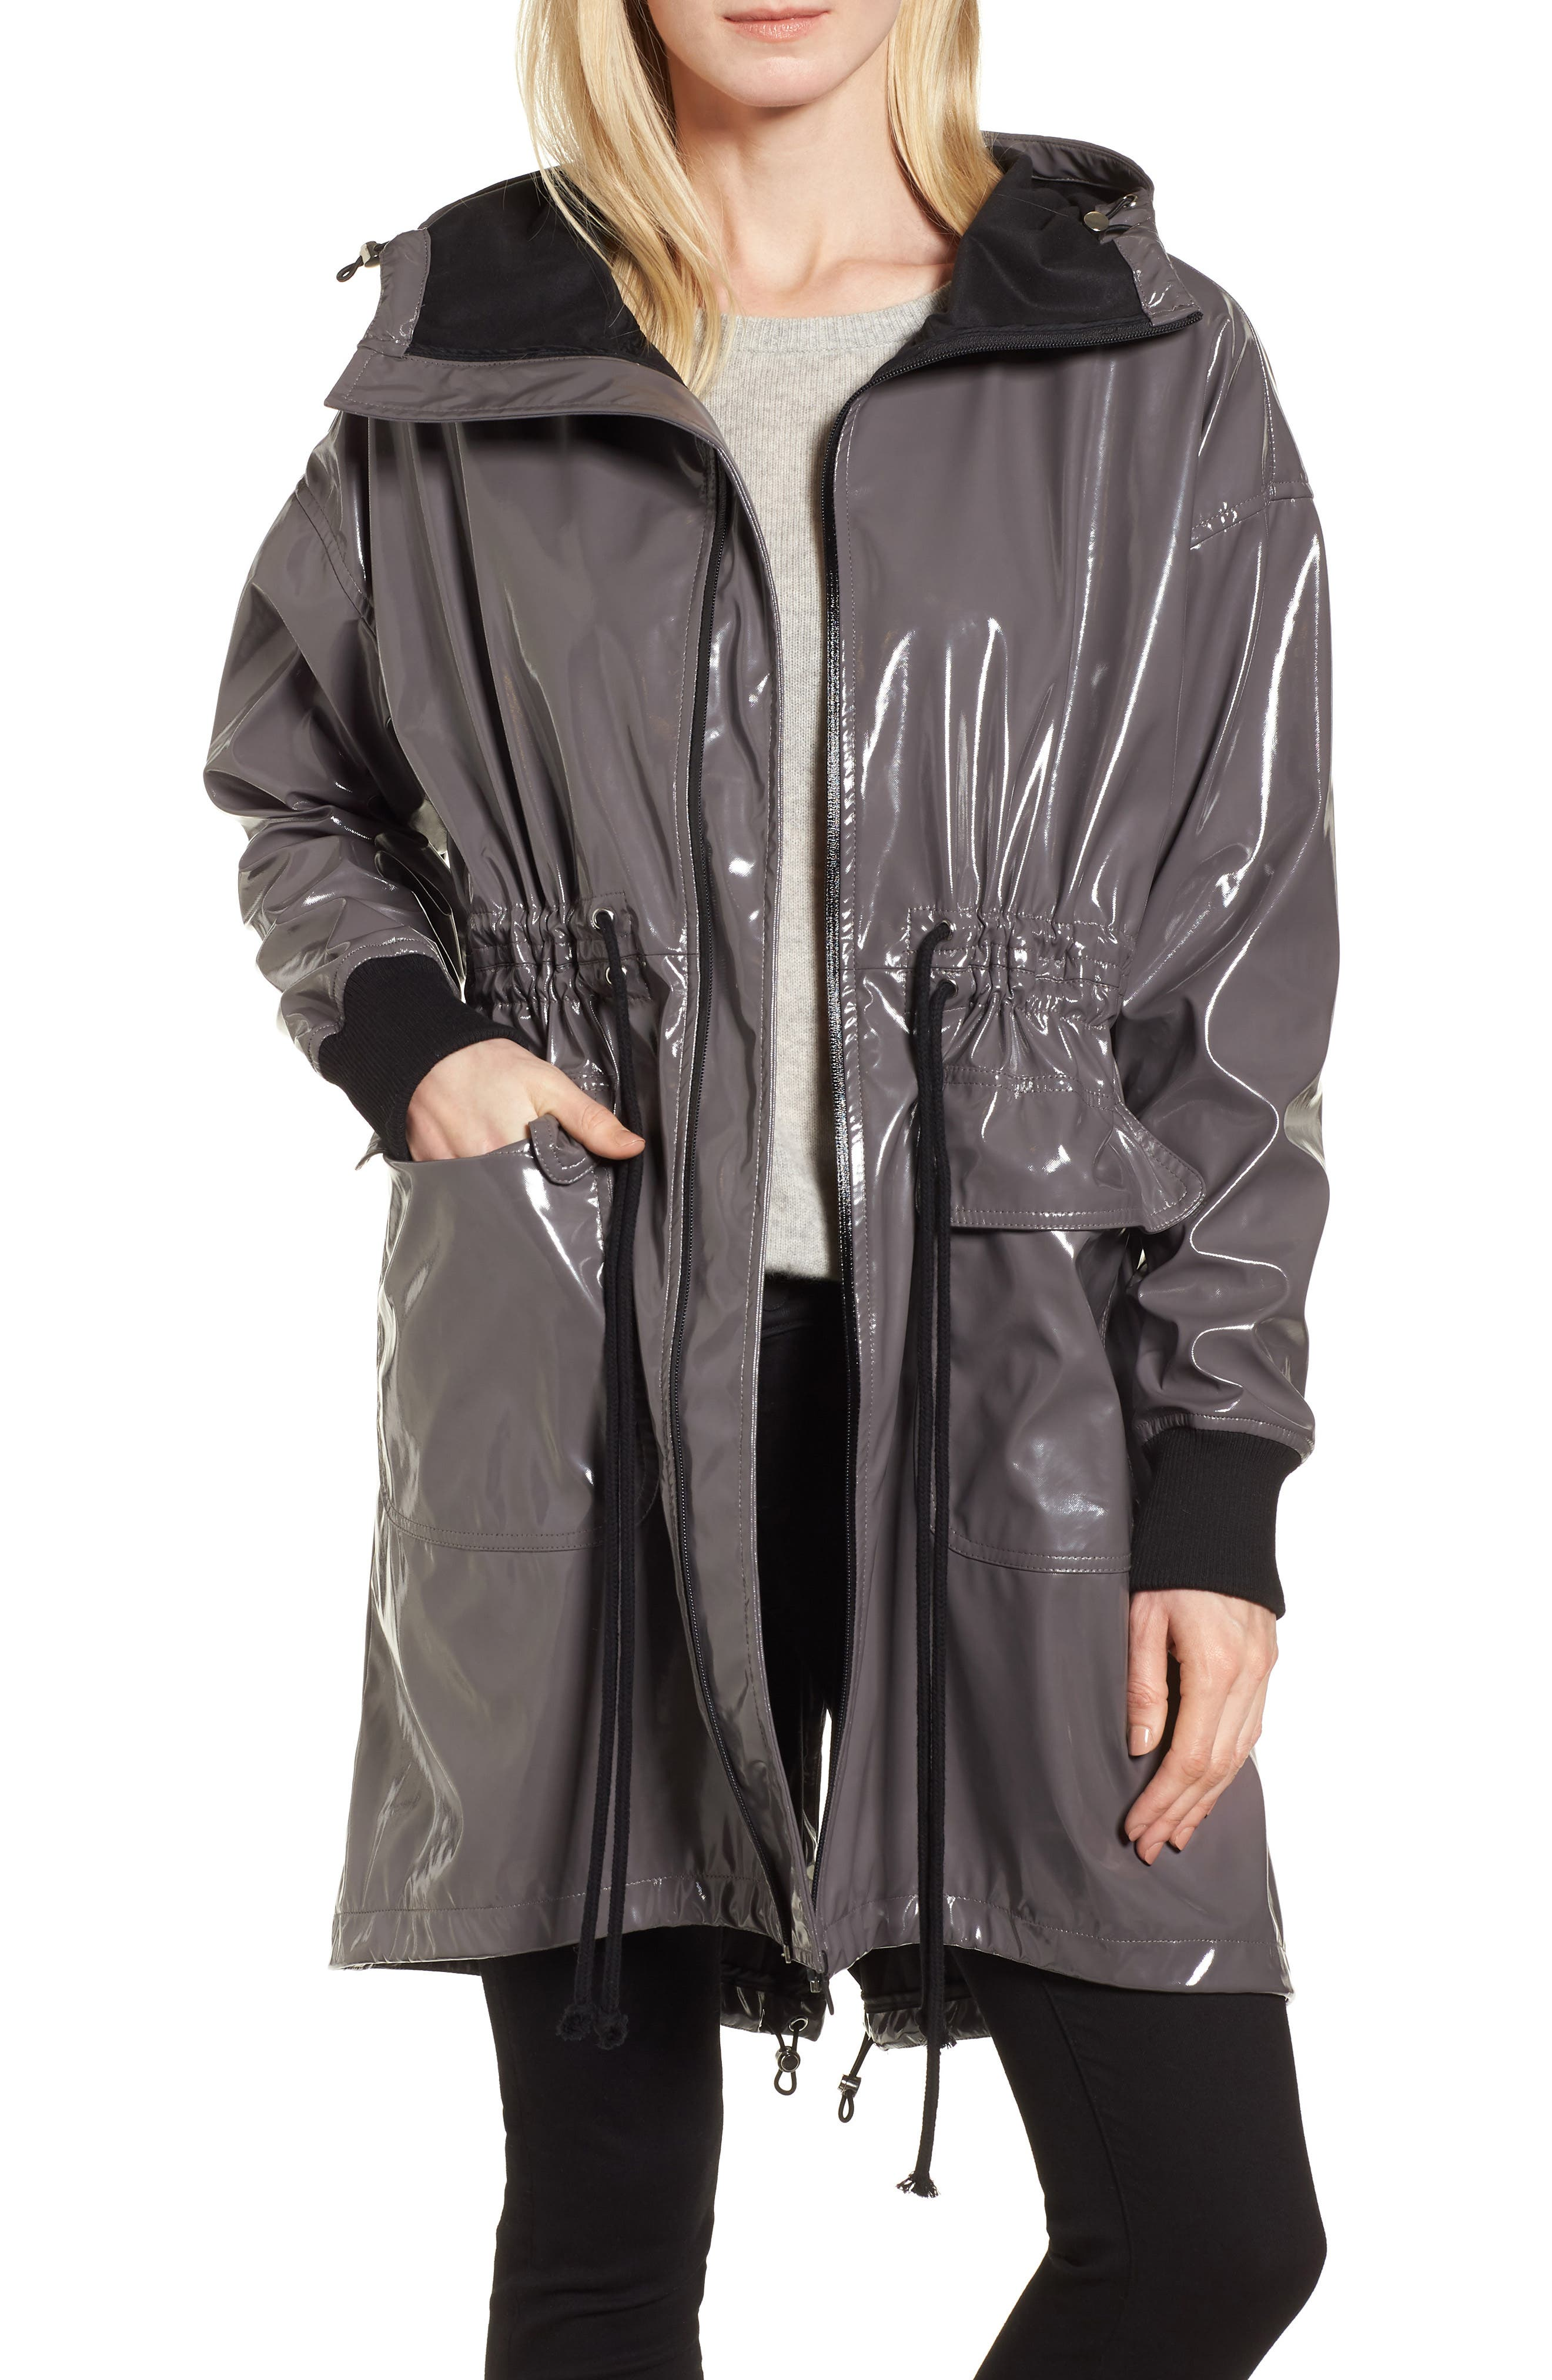 Fawn Patent Hooded Raincoat,                             Main thumbnail 1, color,                             020